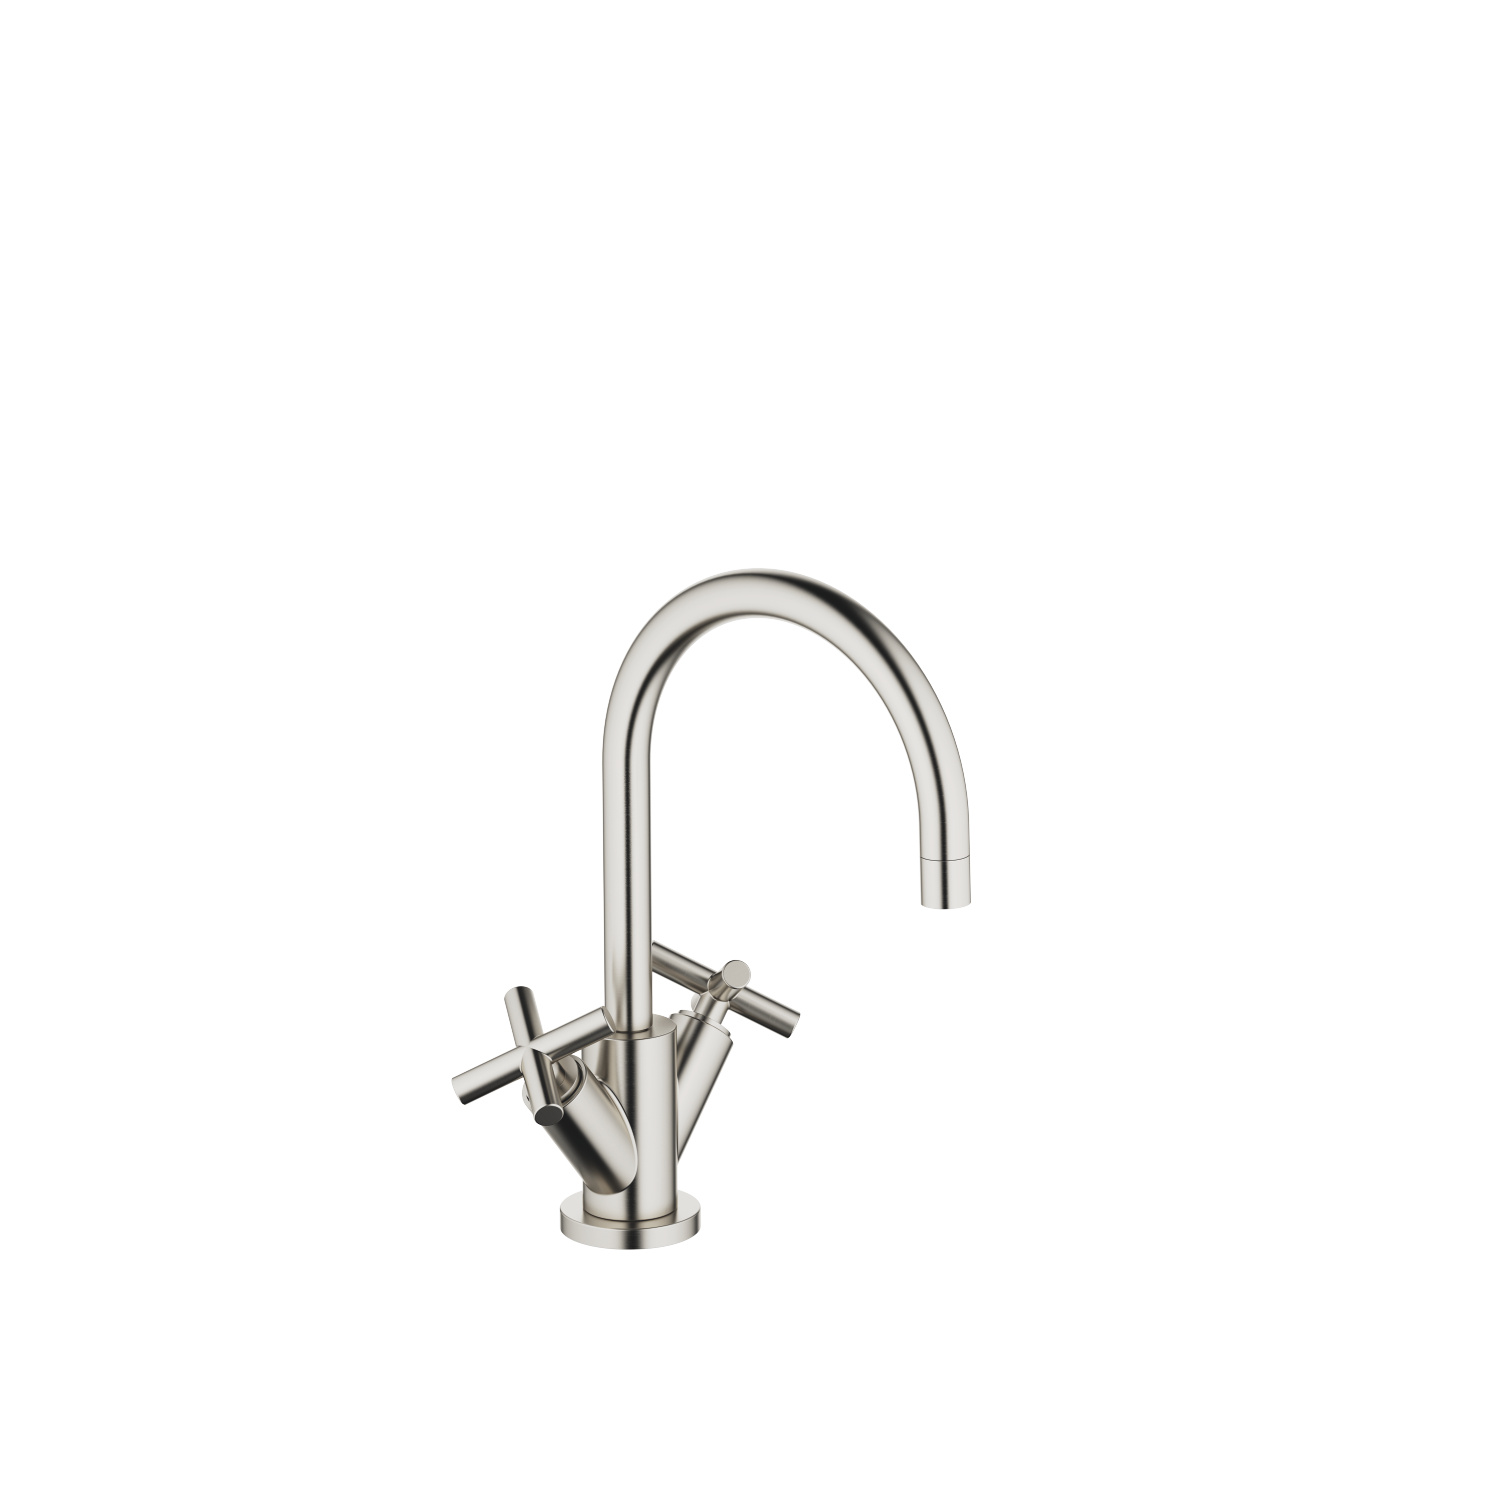 Single-hole basin mixer with pop-up waste - platinum matt